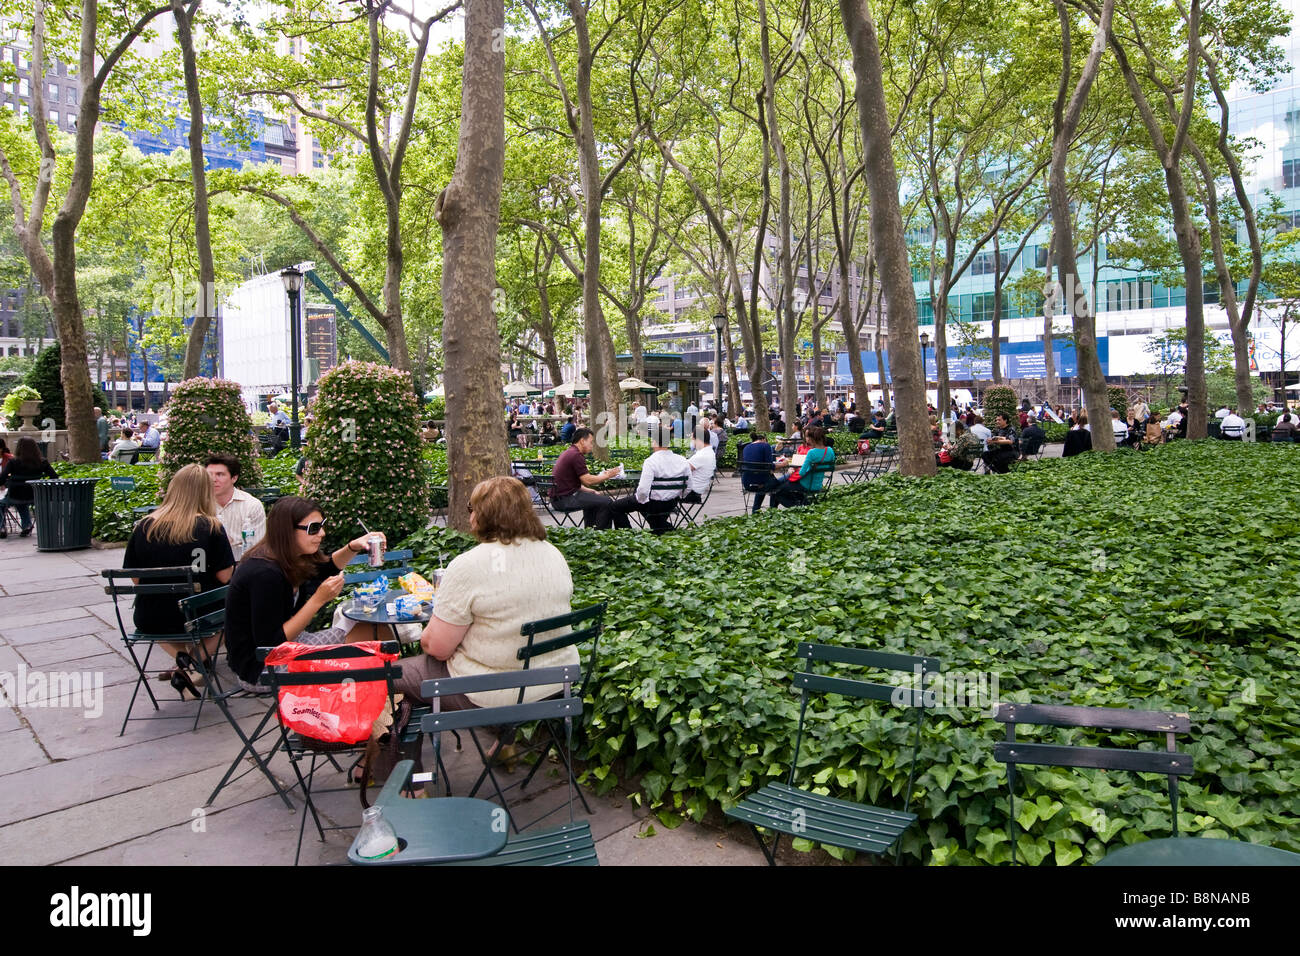 People sitting at small tables under tall trees in a public garden - Stock Image